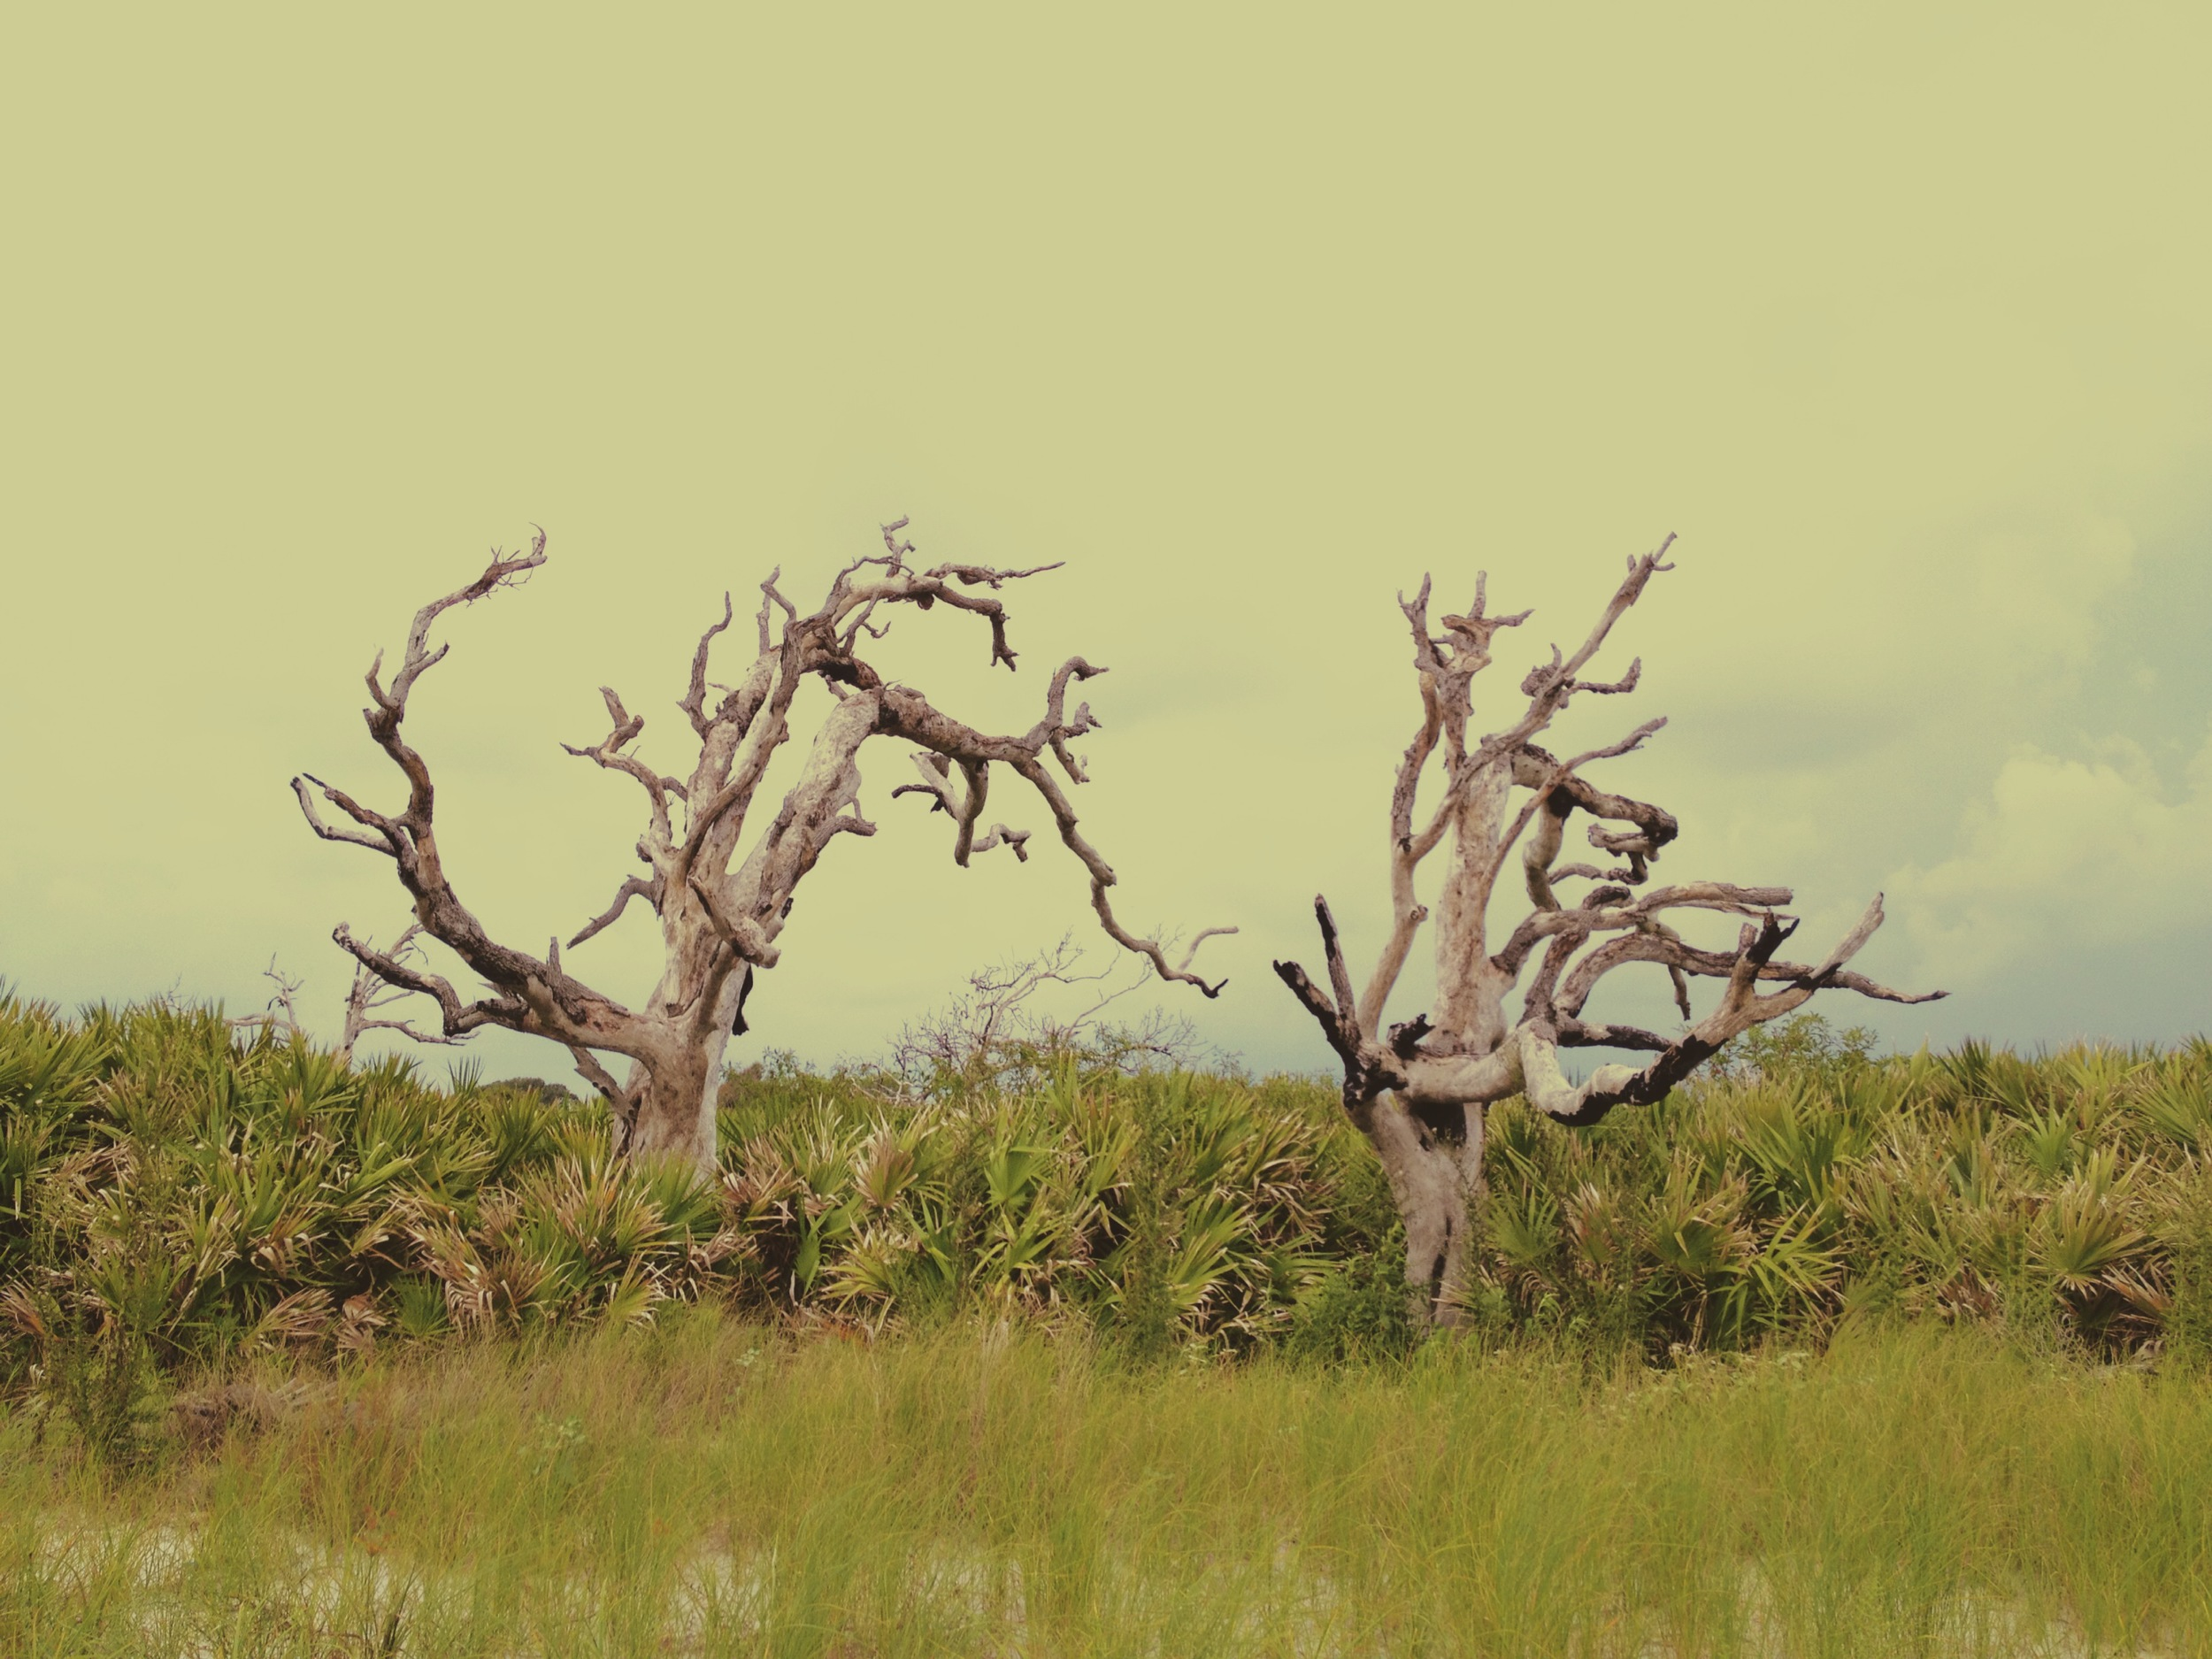 Driftwood / Blackbeard Island National Wildlife Refuge 2014 © Manda Faye Dunigan